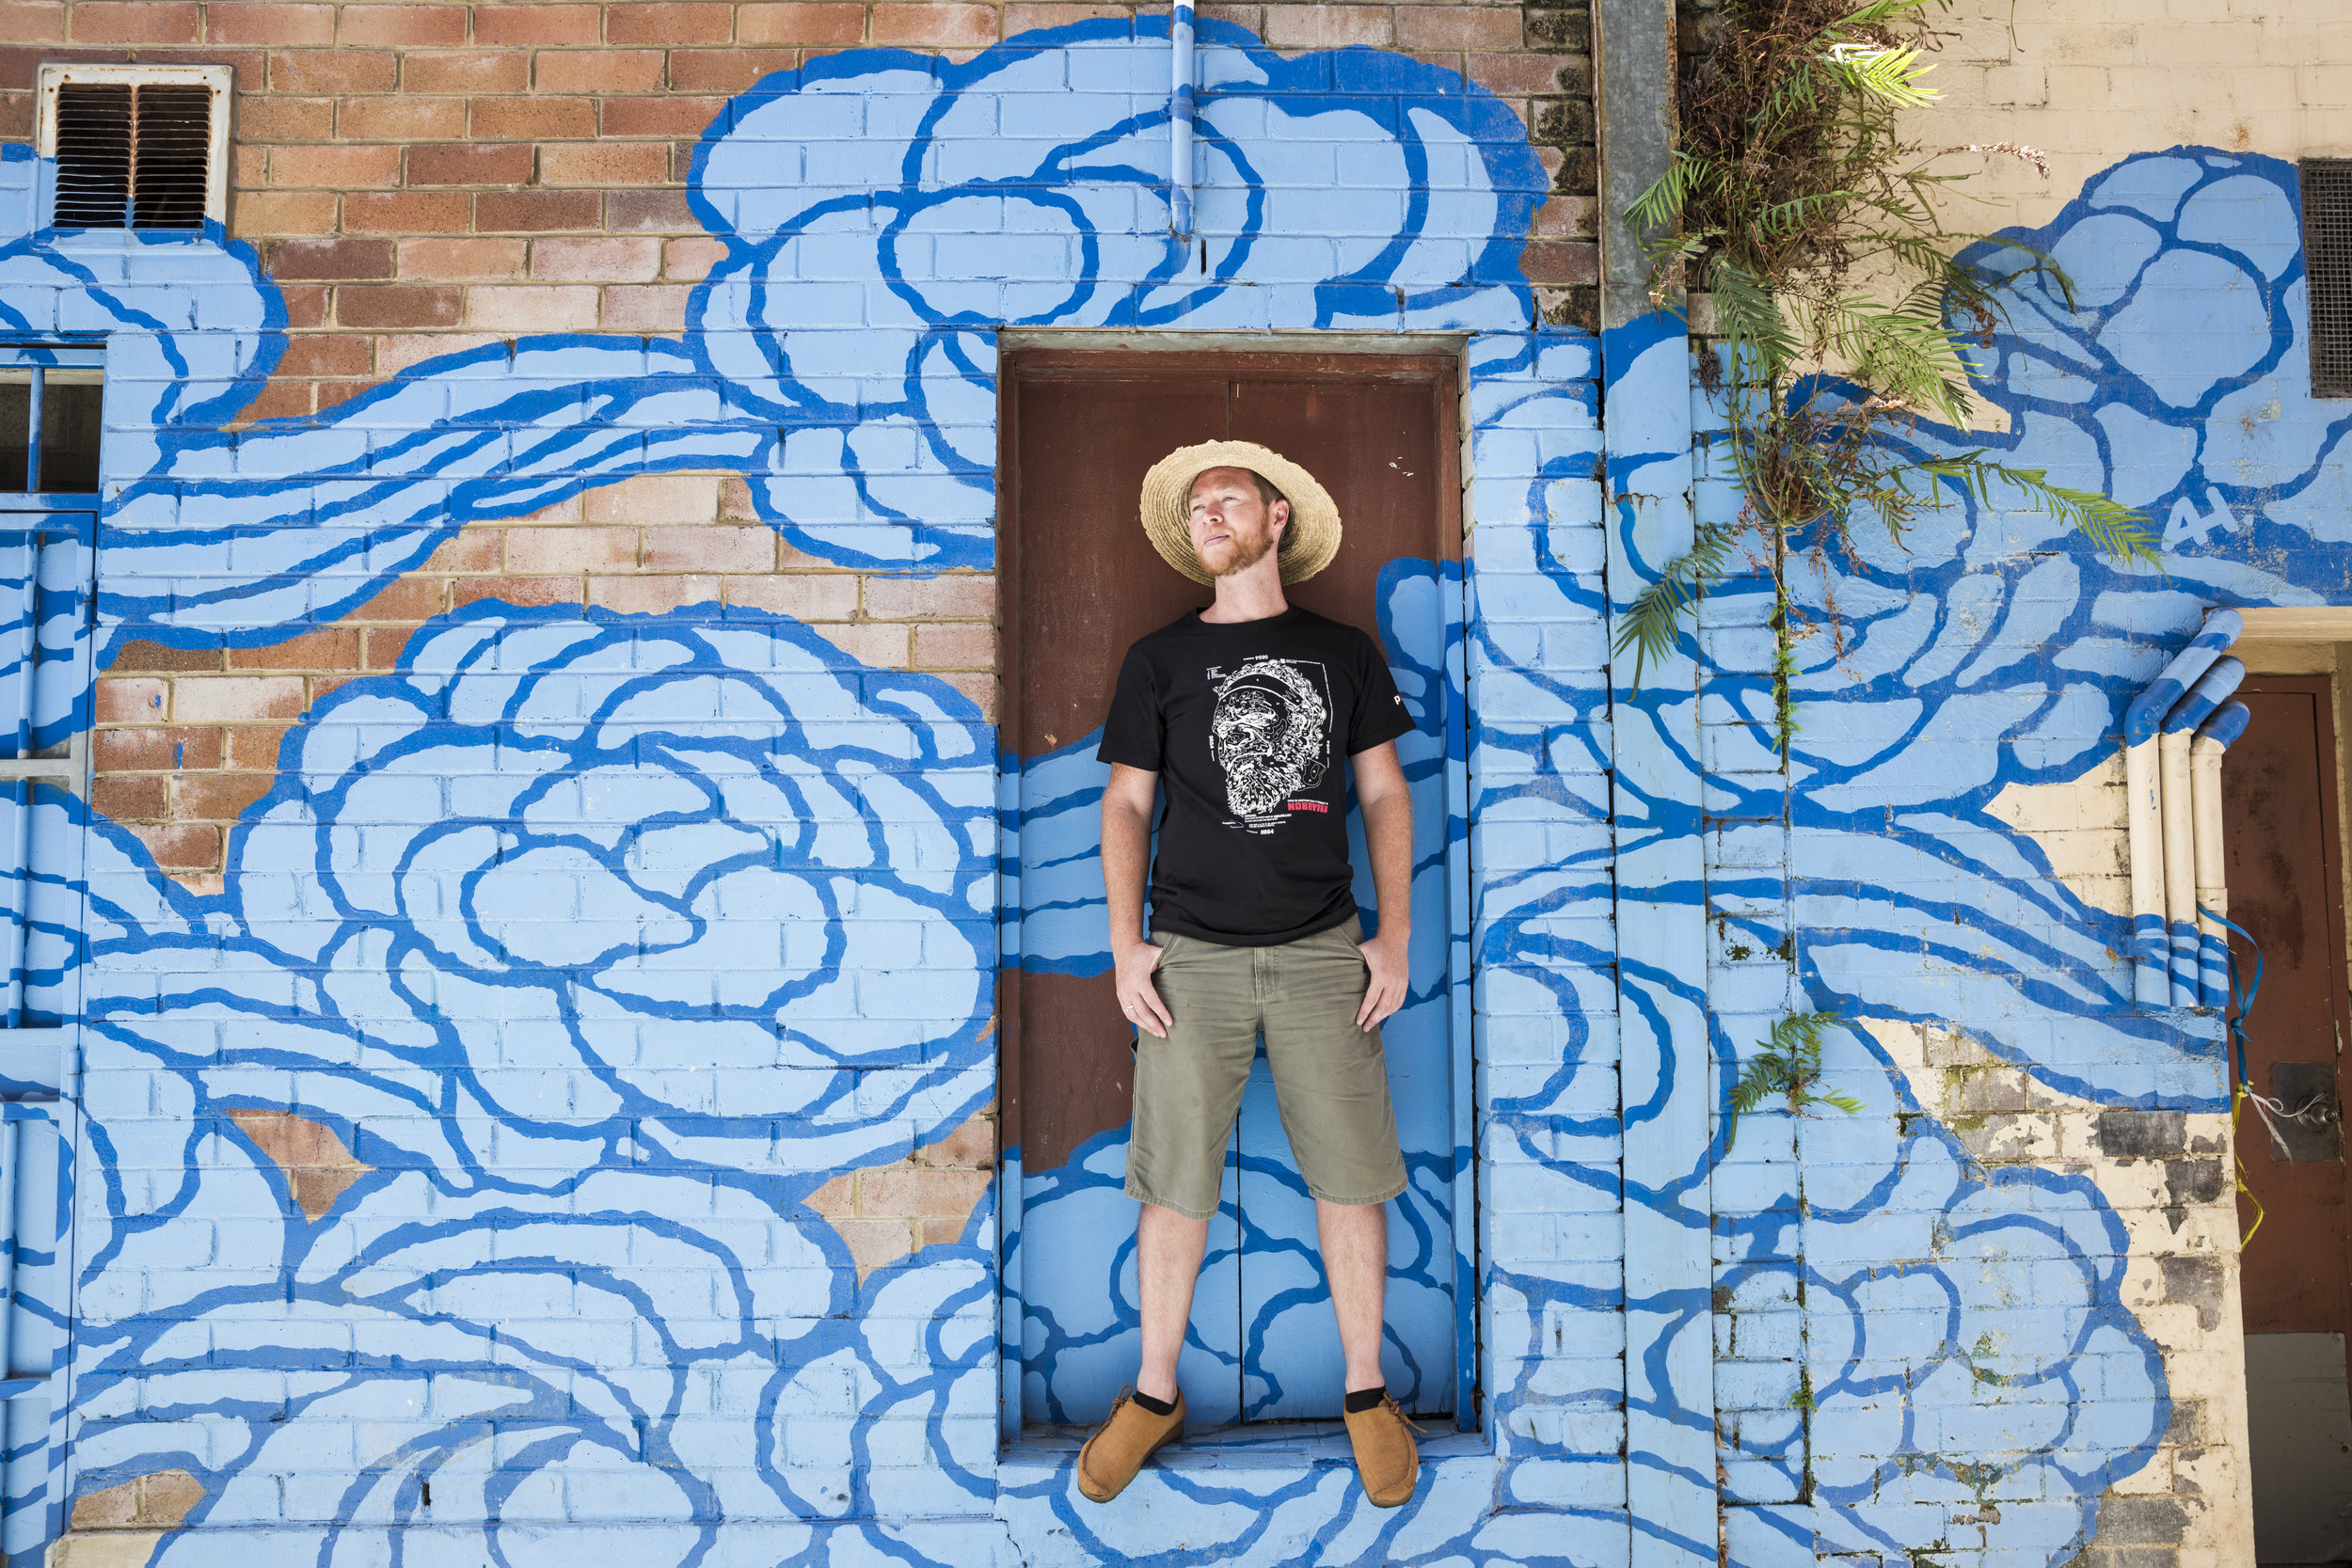 Jason Wing with his mural  Between Two Worlds  by day. Image Credit: Art Pharmacy Consulting.